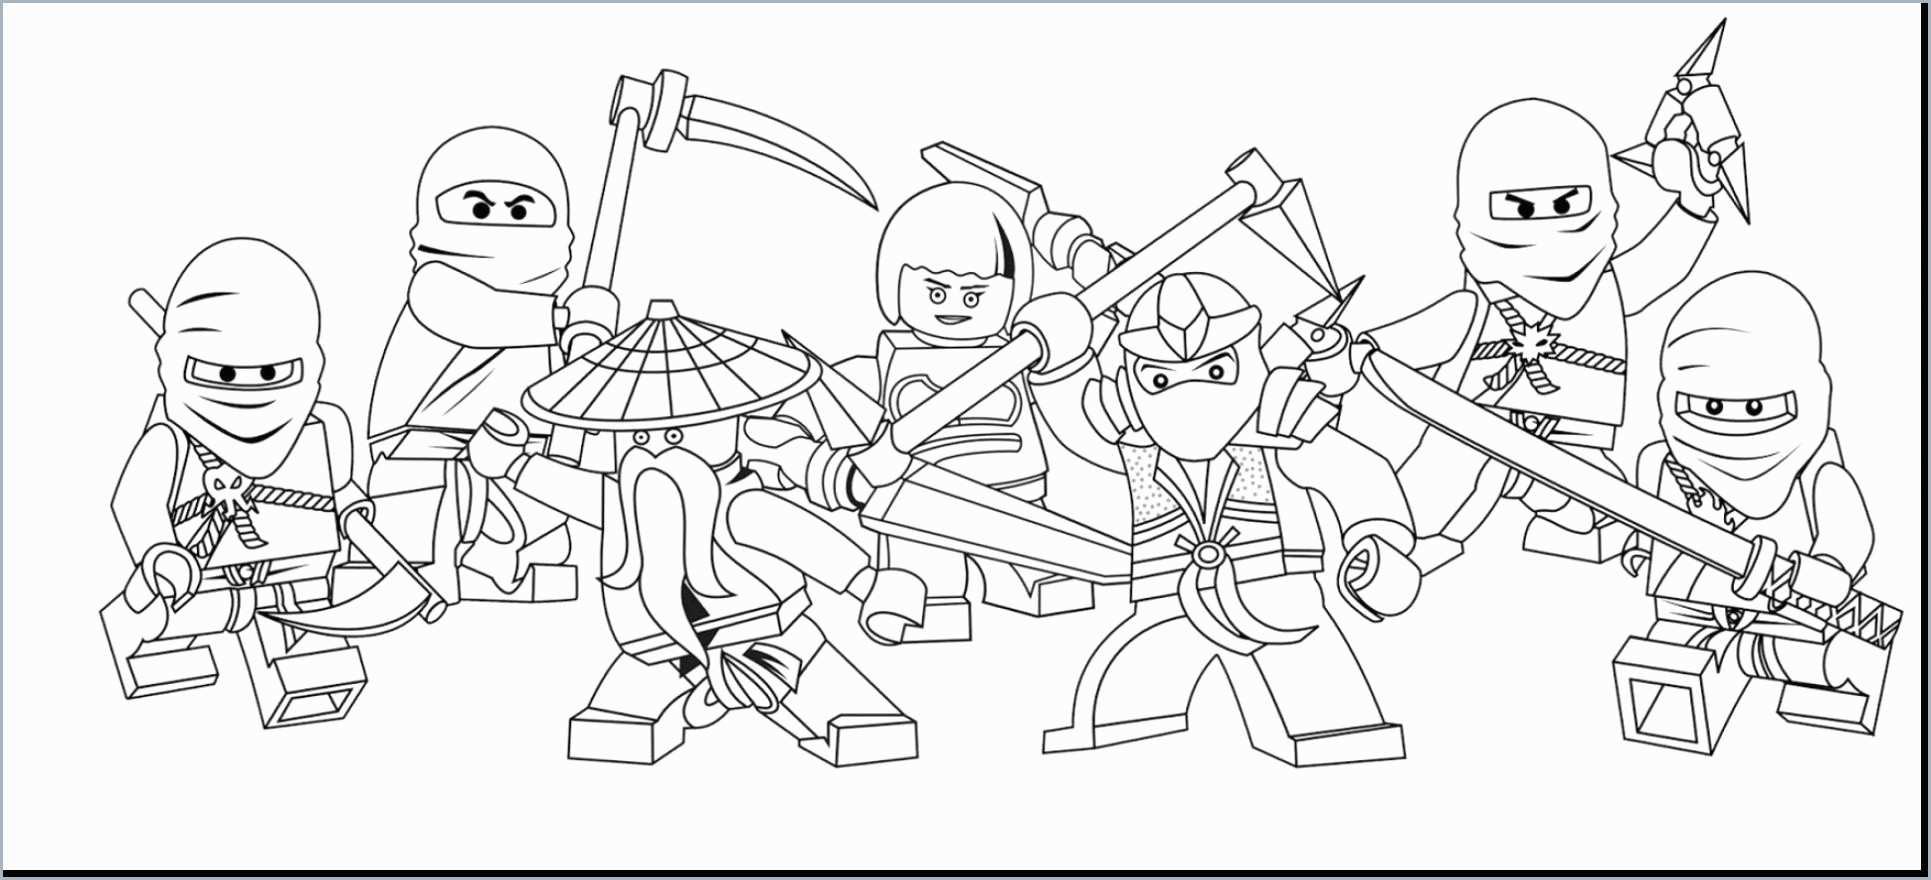 Ninjago Ausmalbilder Kai Inspirierend Lego Ninjago Movie Coloring Pages Cute 16 Coloring Pages Lego Sammlung